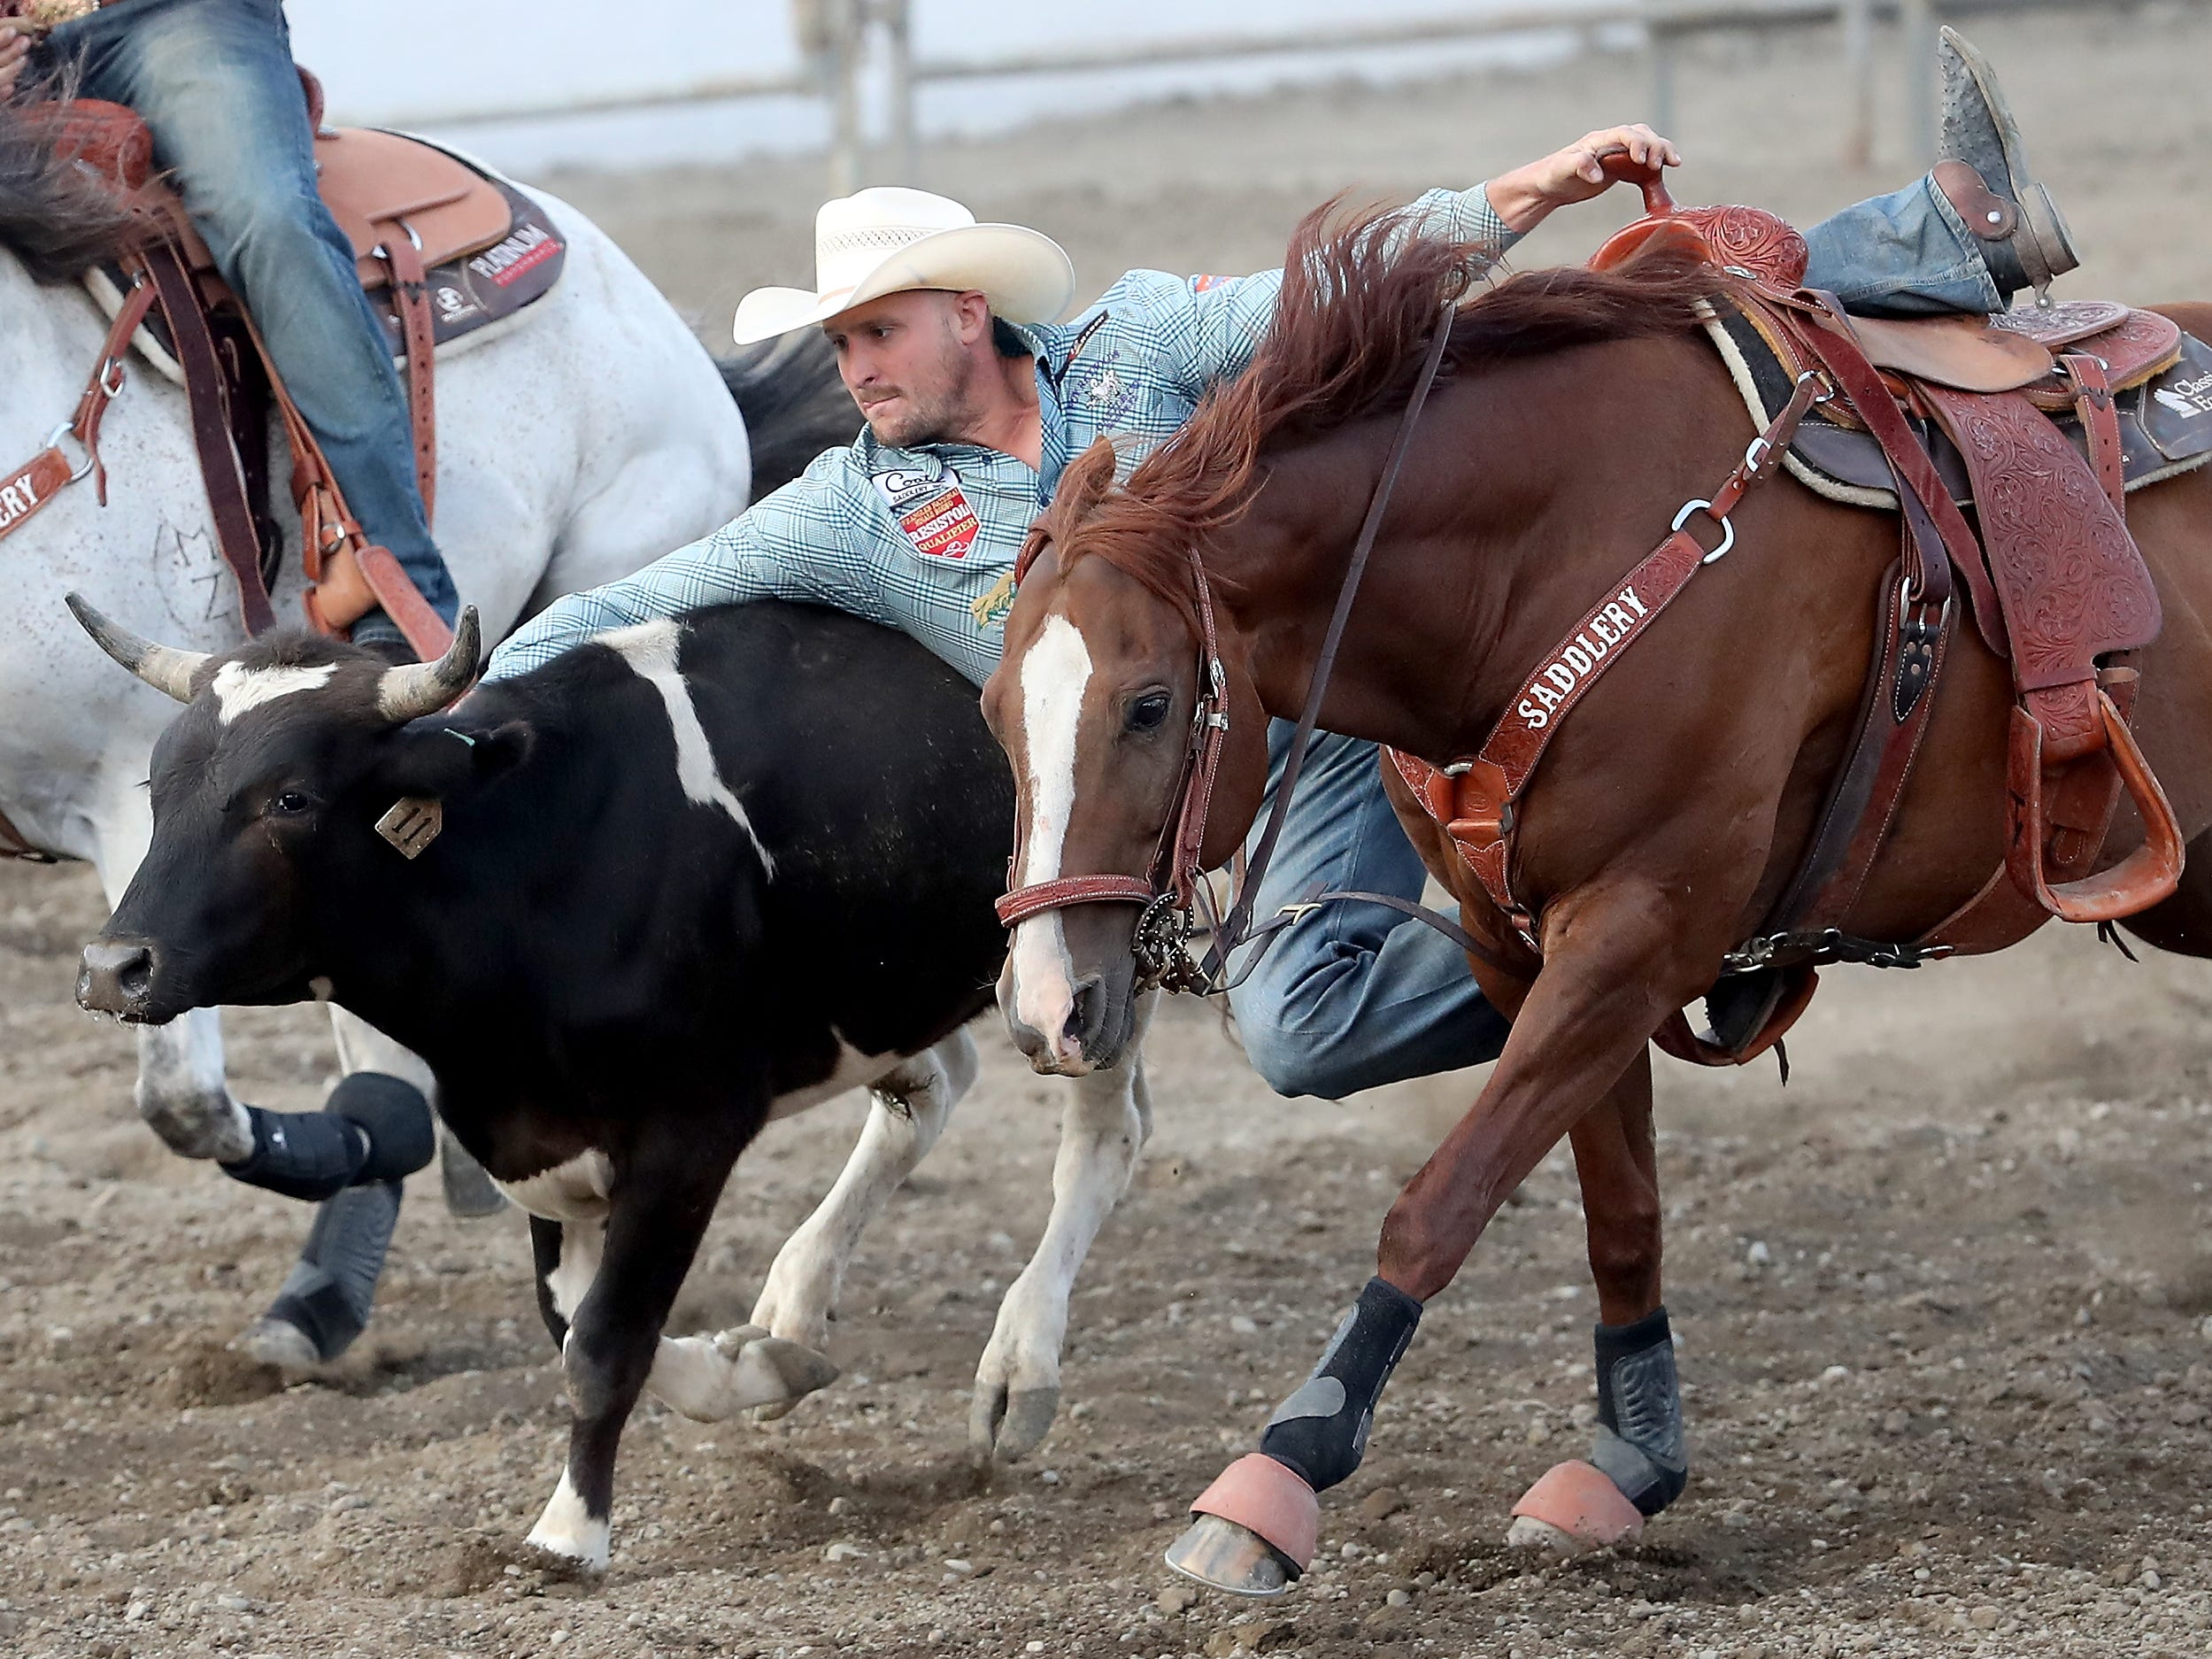 Steer wrestler Kyle Irwin, of Roberstdale, AL, dismounts and grabs the steer at the Kitsap County Fair & Stampede on Thursday, August 23. 2018.